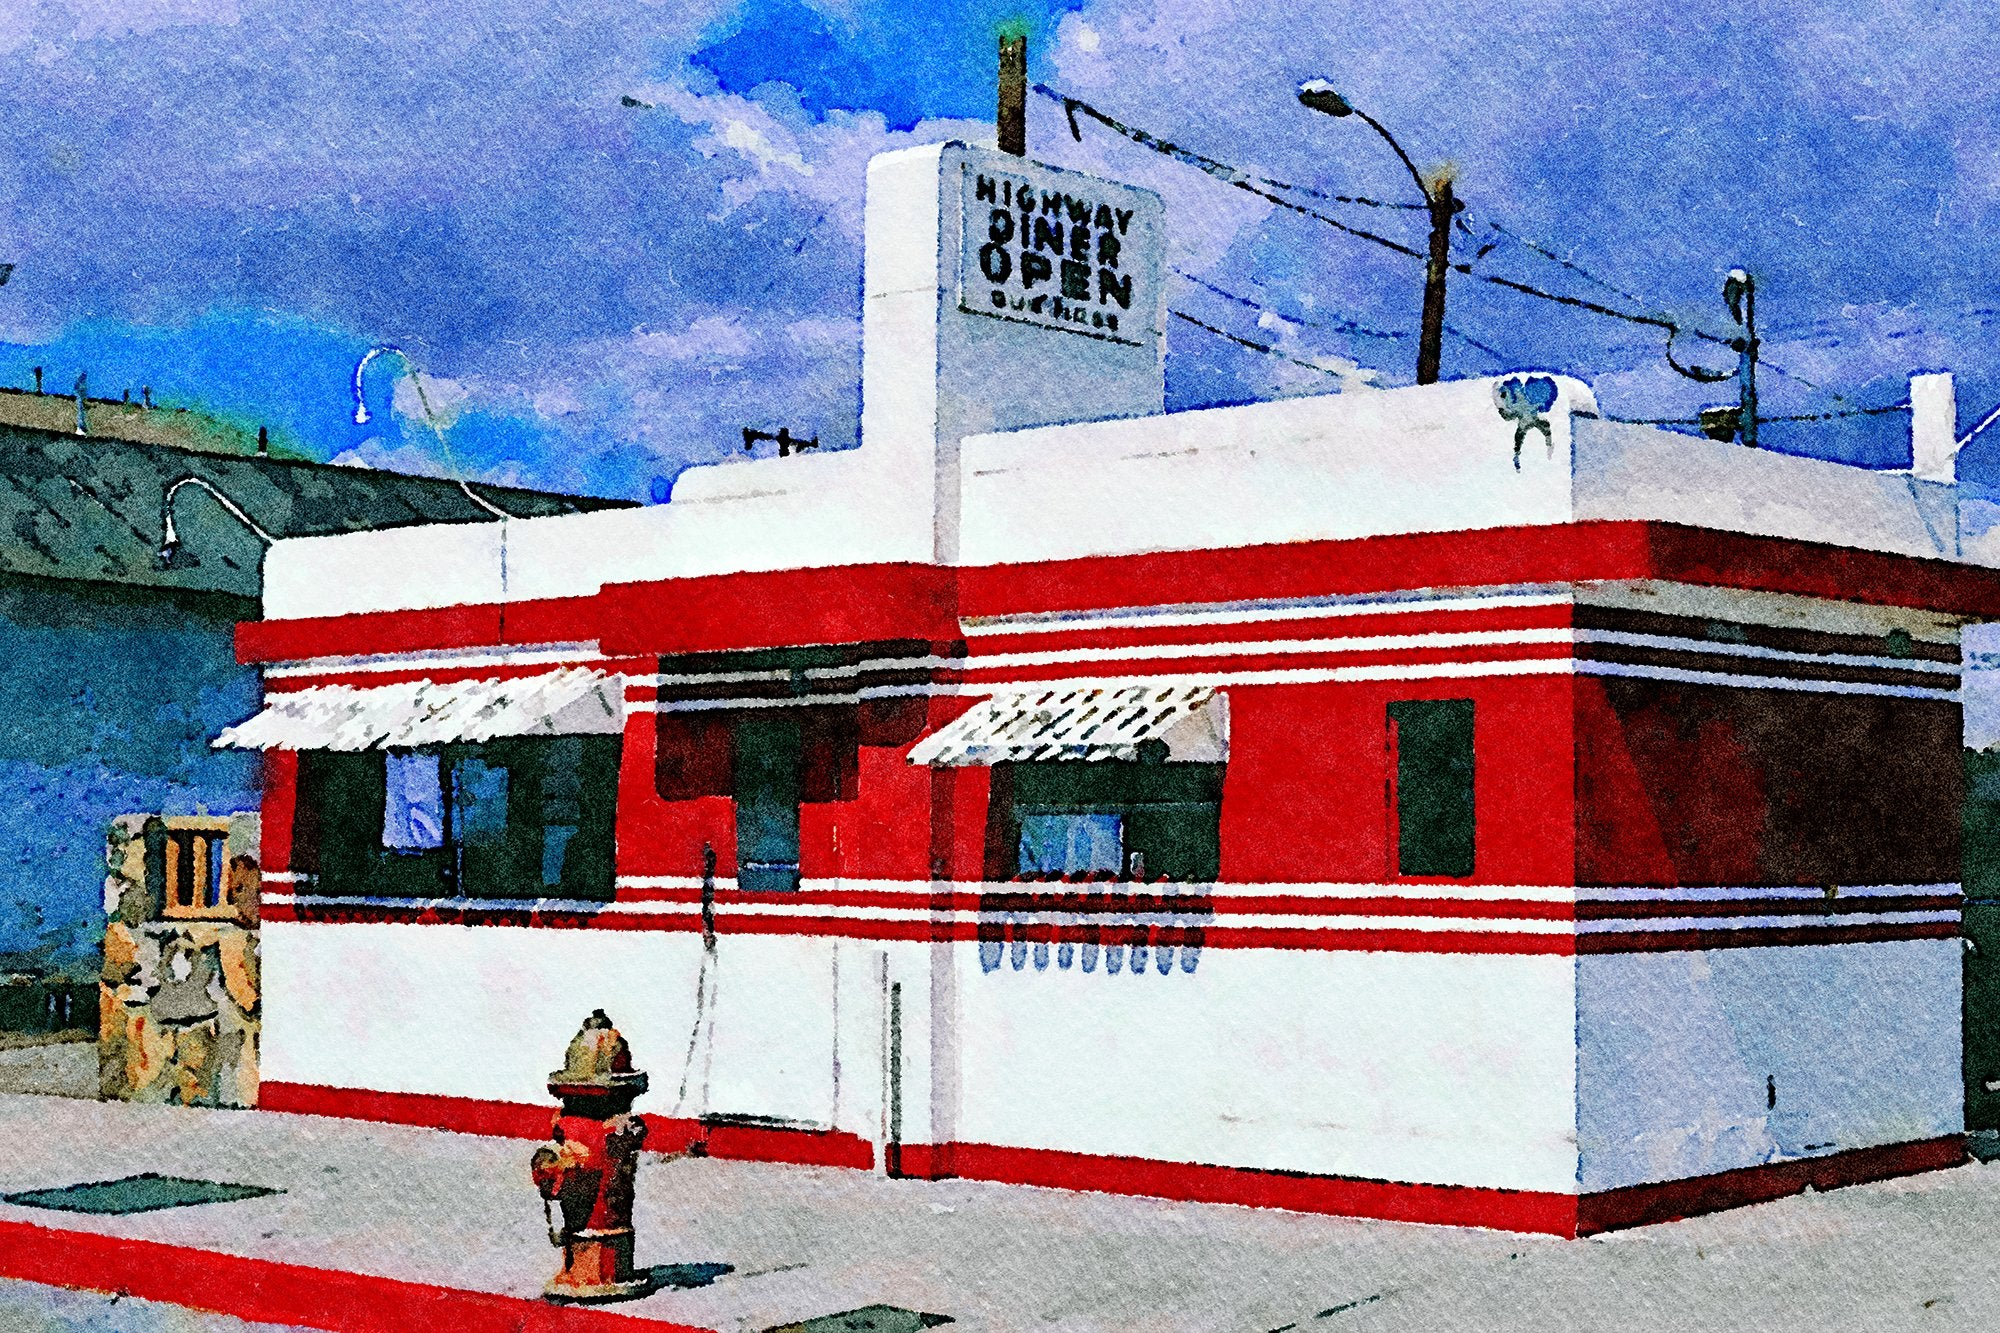 Highway Diner, Route 66, Winslow, Arizona, Reworked, Series 1